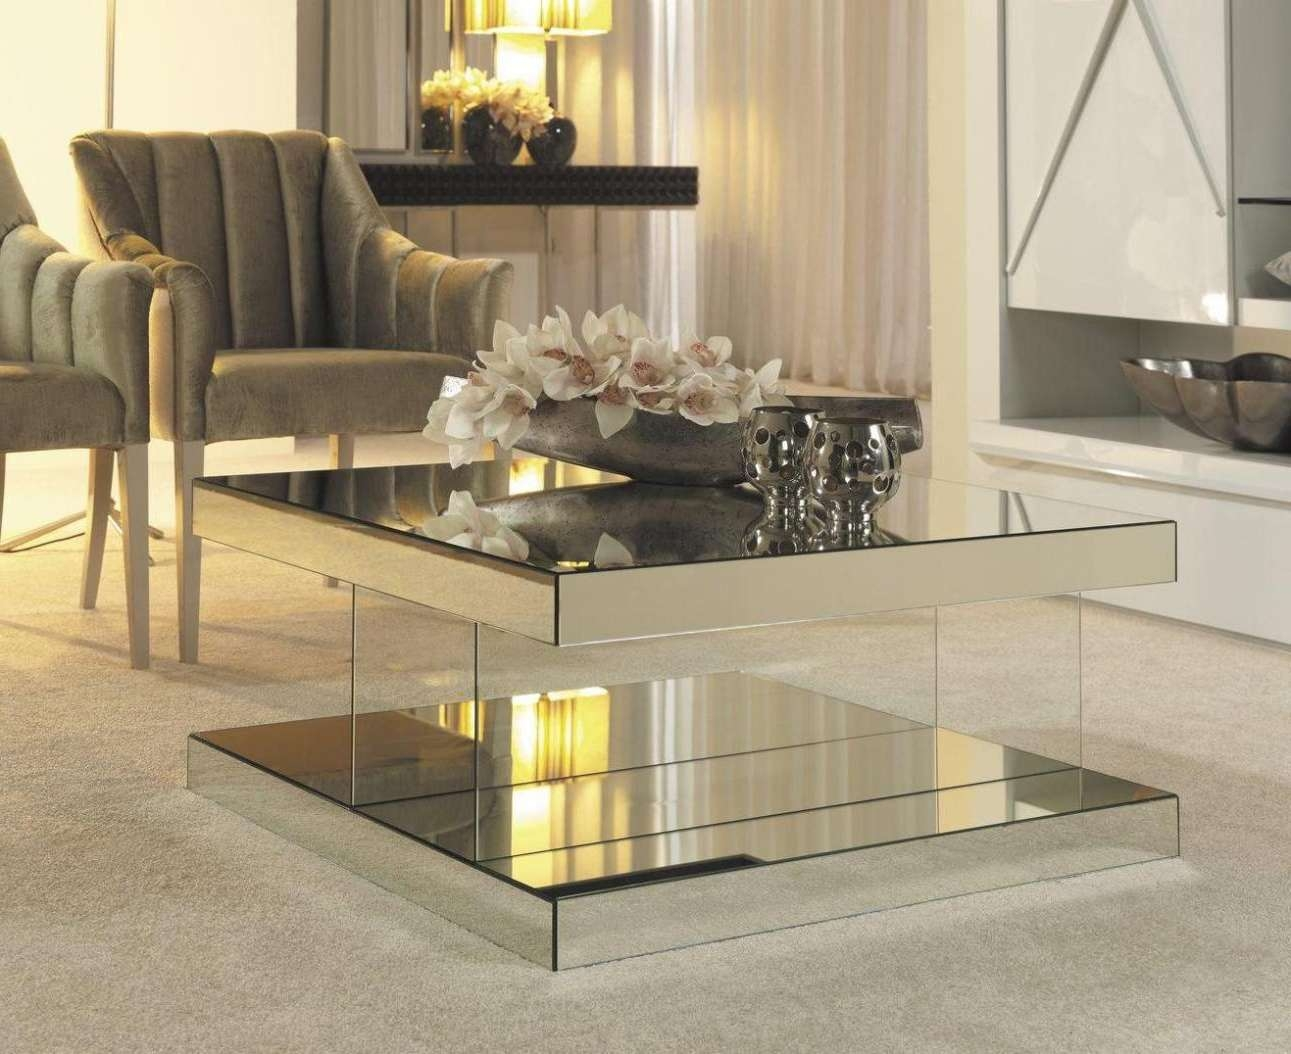 Mirror Coffee Table – Writehookstudio With Regard To Current Round Mirrored Coffee Tables (View 11 of 20)